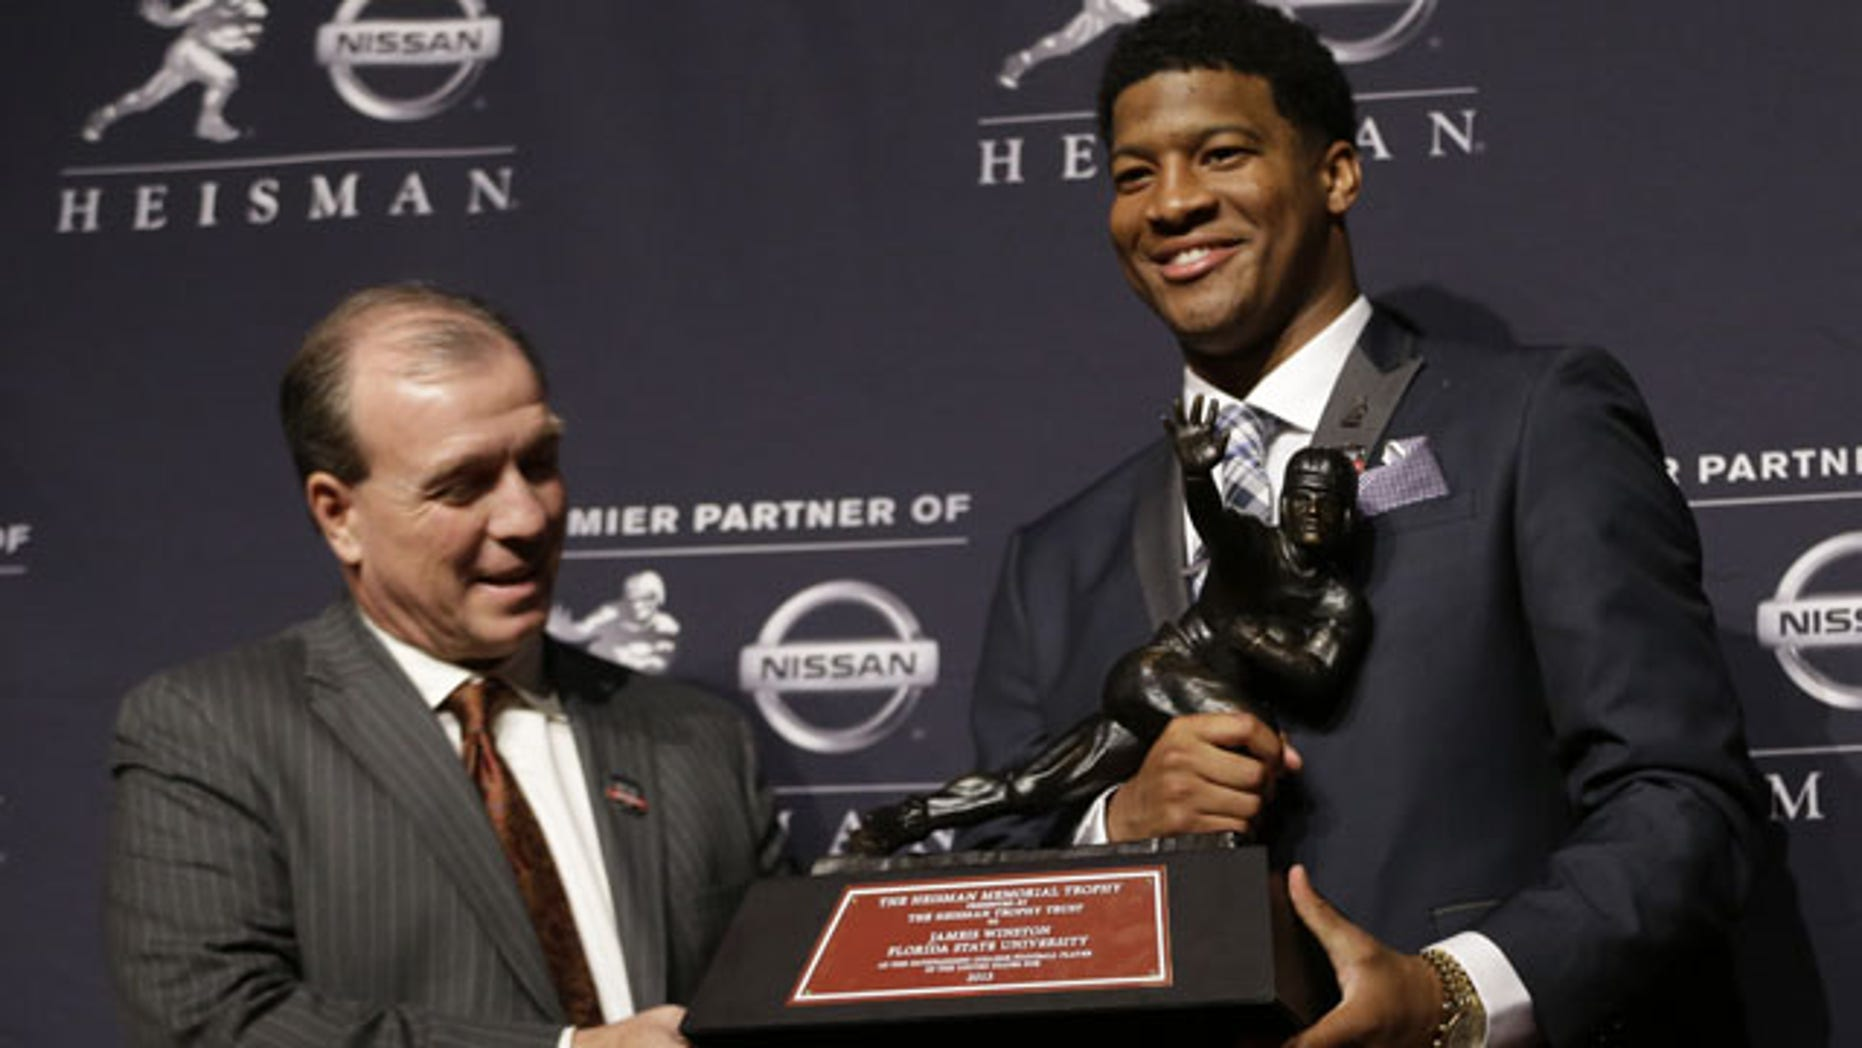 December 14, 2013: Florida State quarterback Jameis Winston, right, stands with FSU coach Jimbo Fisher while holding the Heisman Trophy after winning the award in New York. (AP Photo/Julio Cortez)